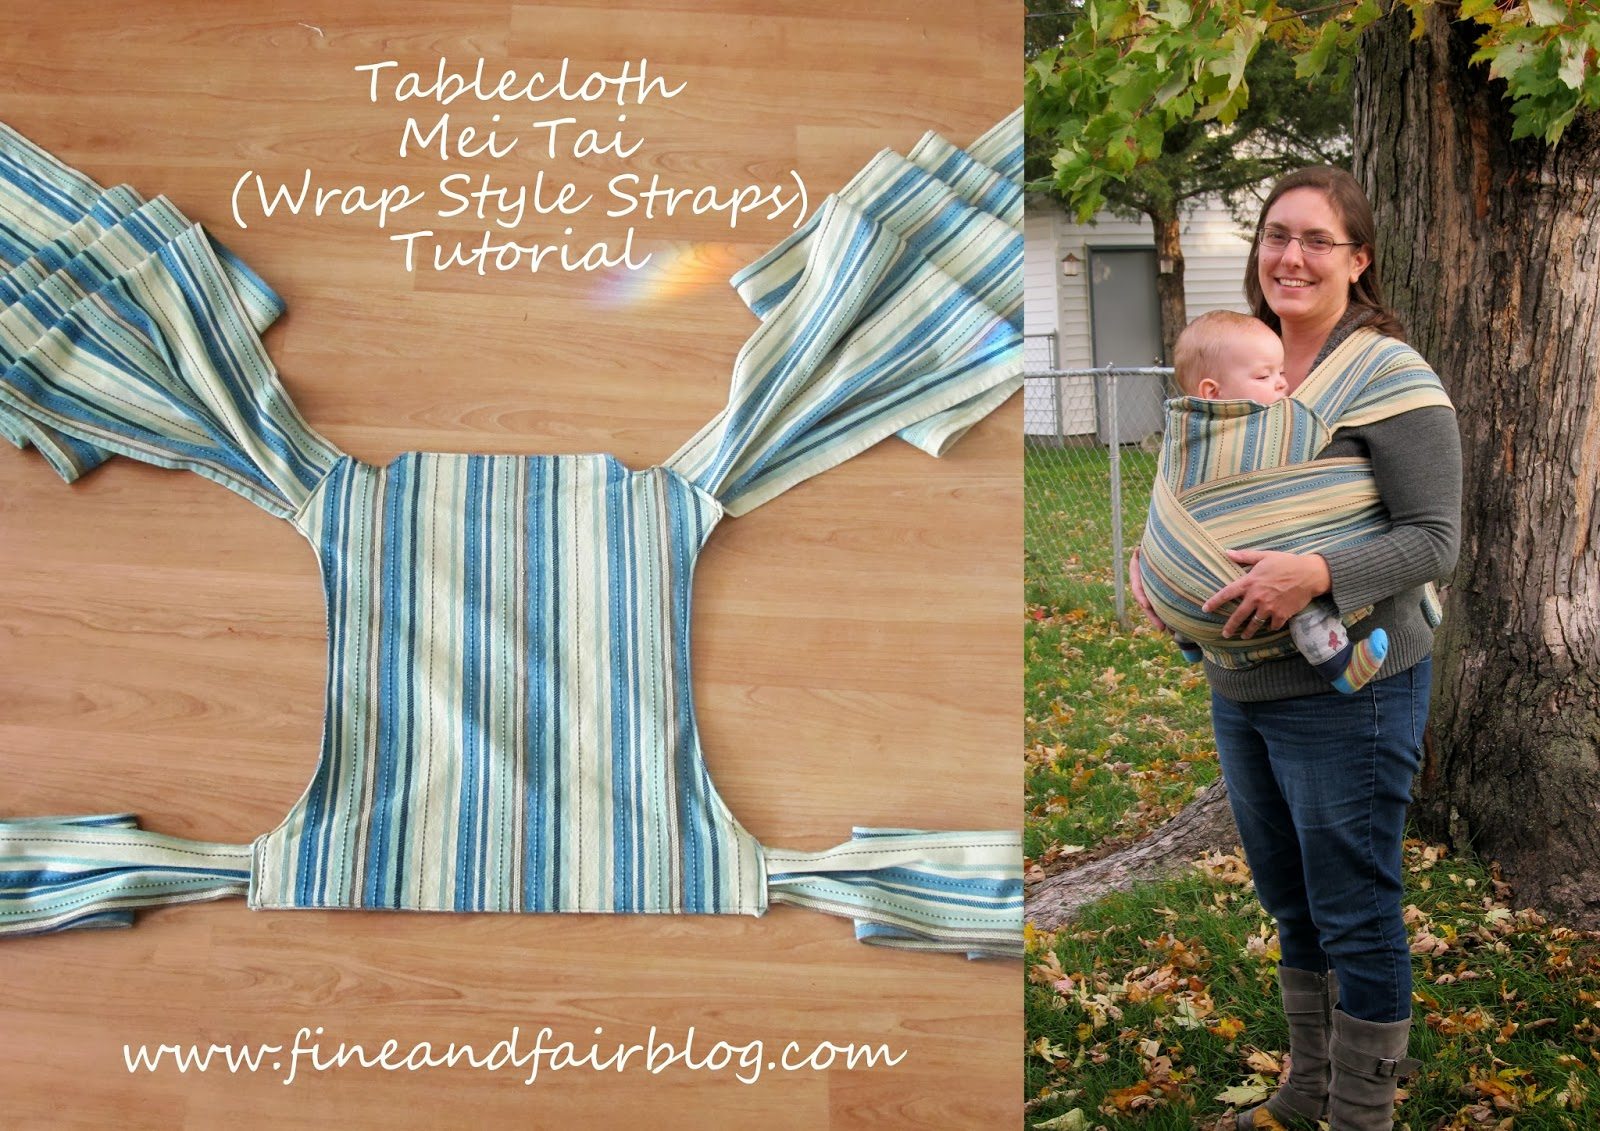 Fine And Fair Tablecloth Mei Tai Tutorial With Wrap Style Straps